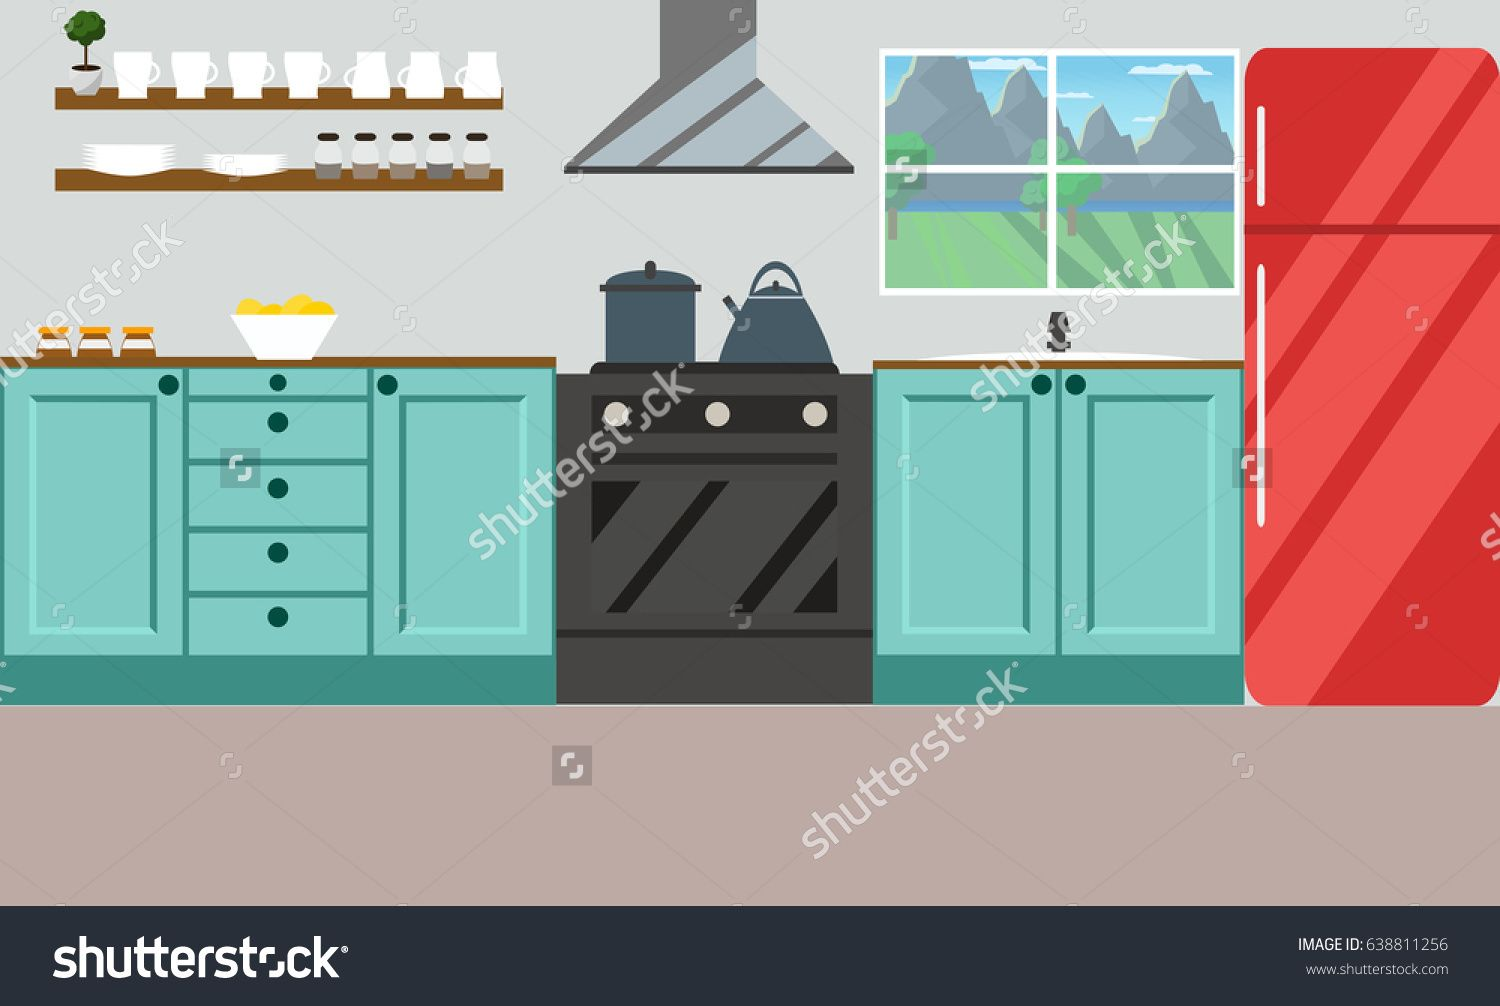 Cartoon kitchen with cabinets and window vector art illustration - Kitchen Vector Illustration Flat Design Cute Drawing Of Bright Kitchen Shutterstock Pinterest Flat Design Drawings And Illustrations